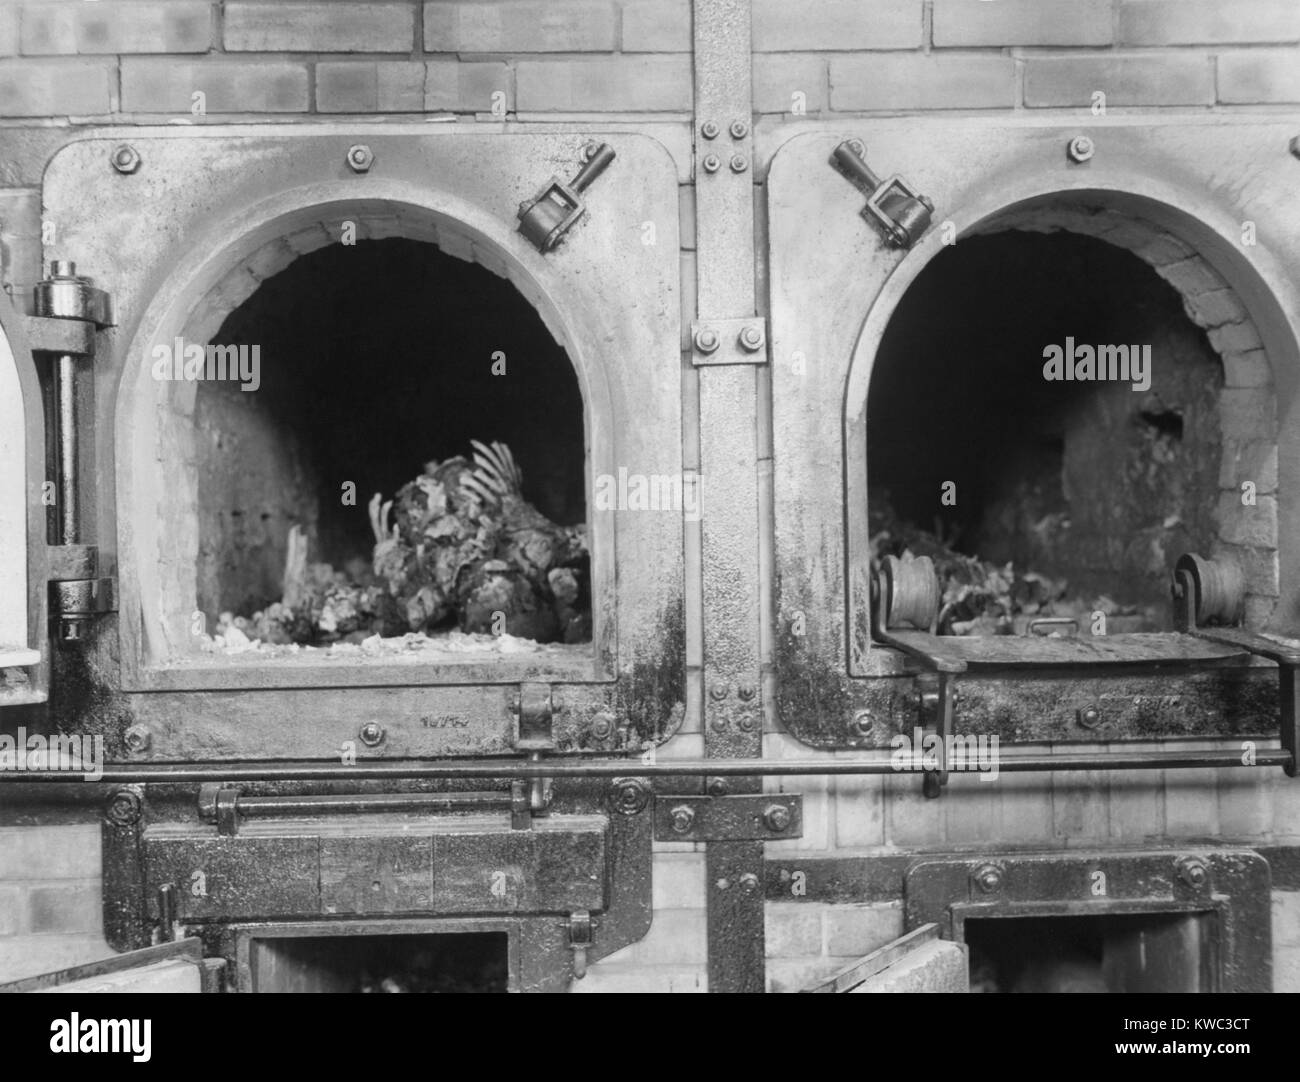 Cremation ovens at the Buchenwald concentration camp near Jena, Germany, April 16, 1945. Prisoners from all over - Stock Image